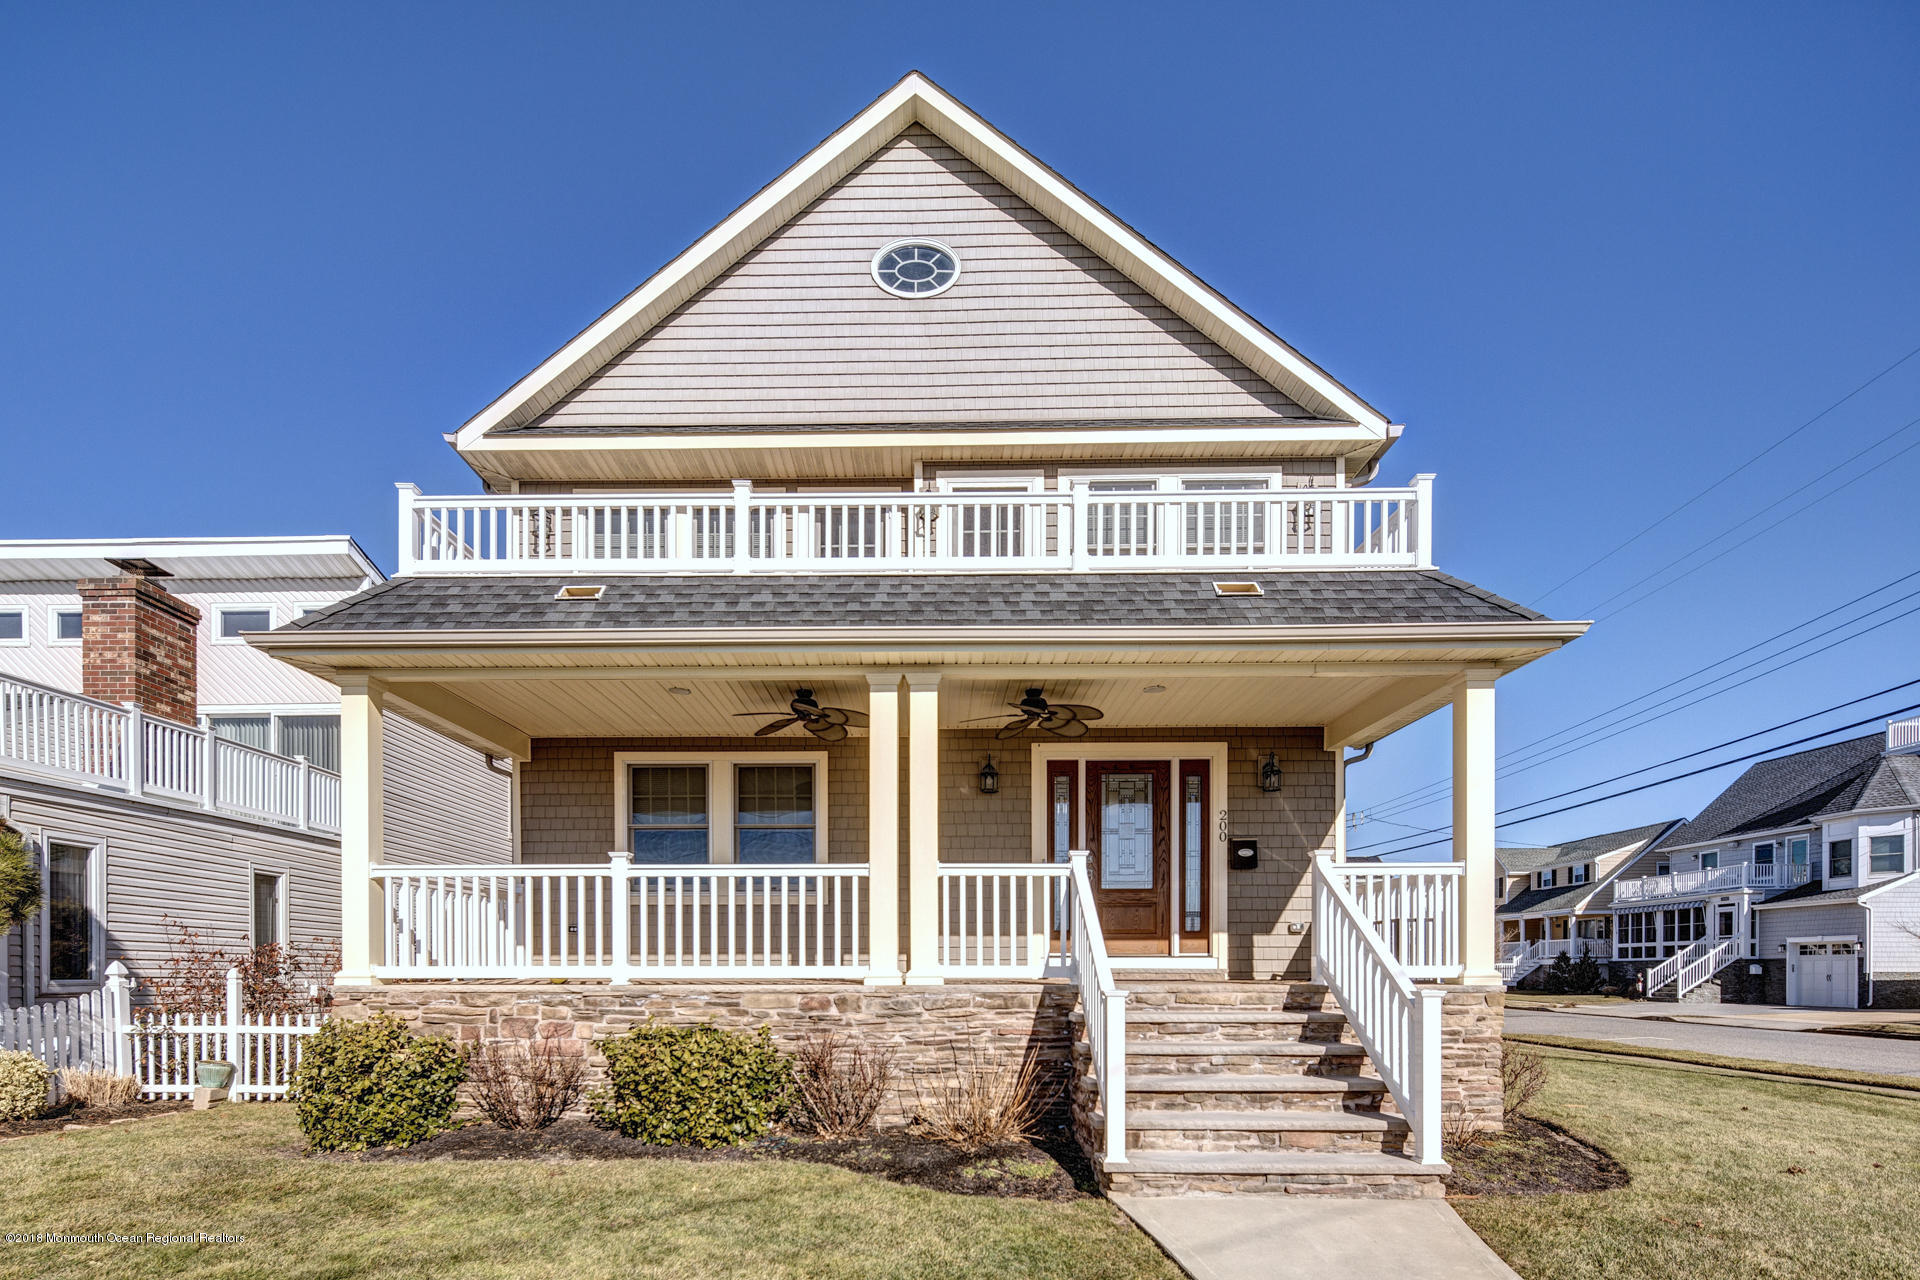 Photo of 200 North Boulevard, Belmar, NJ 07719